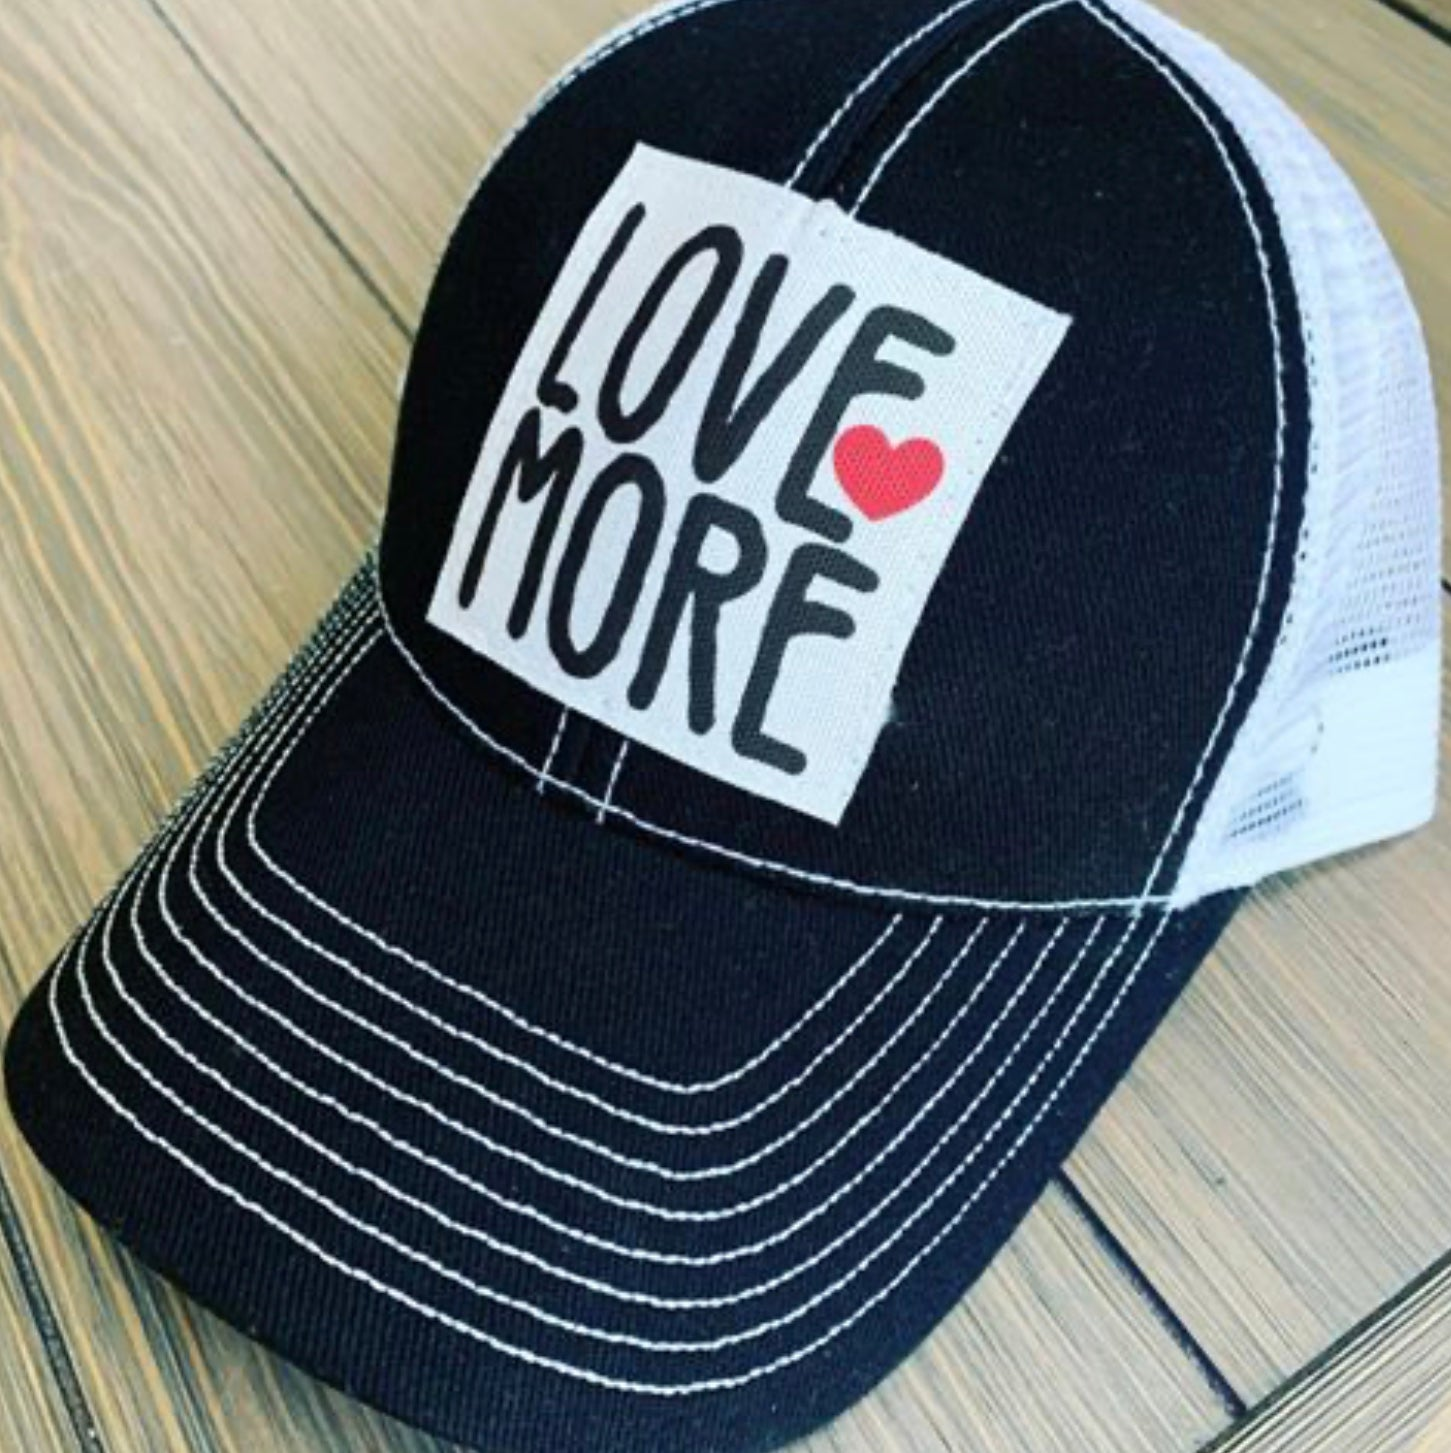 HAT - LOVE MORE